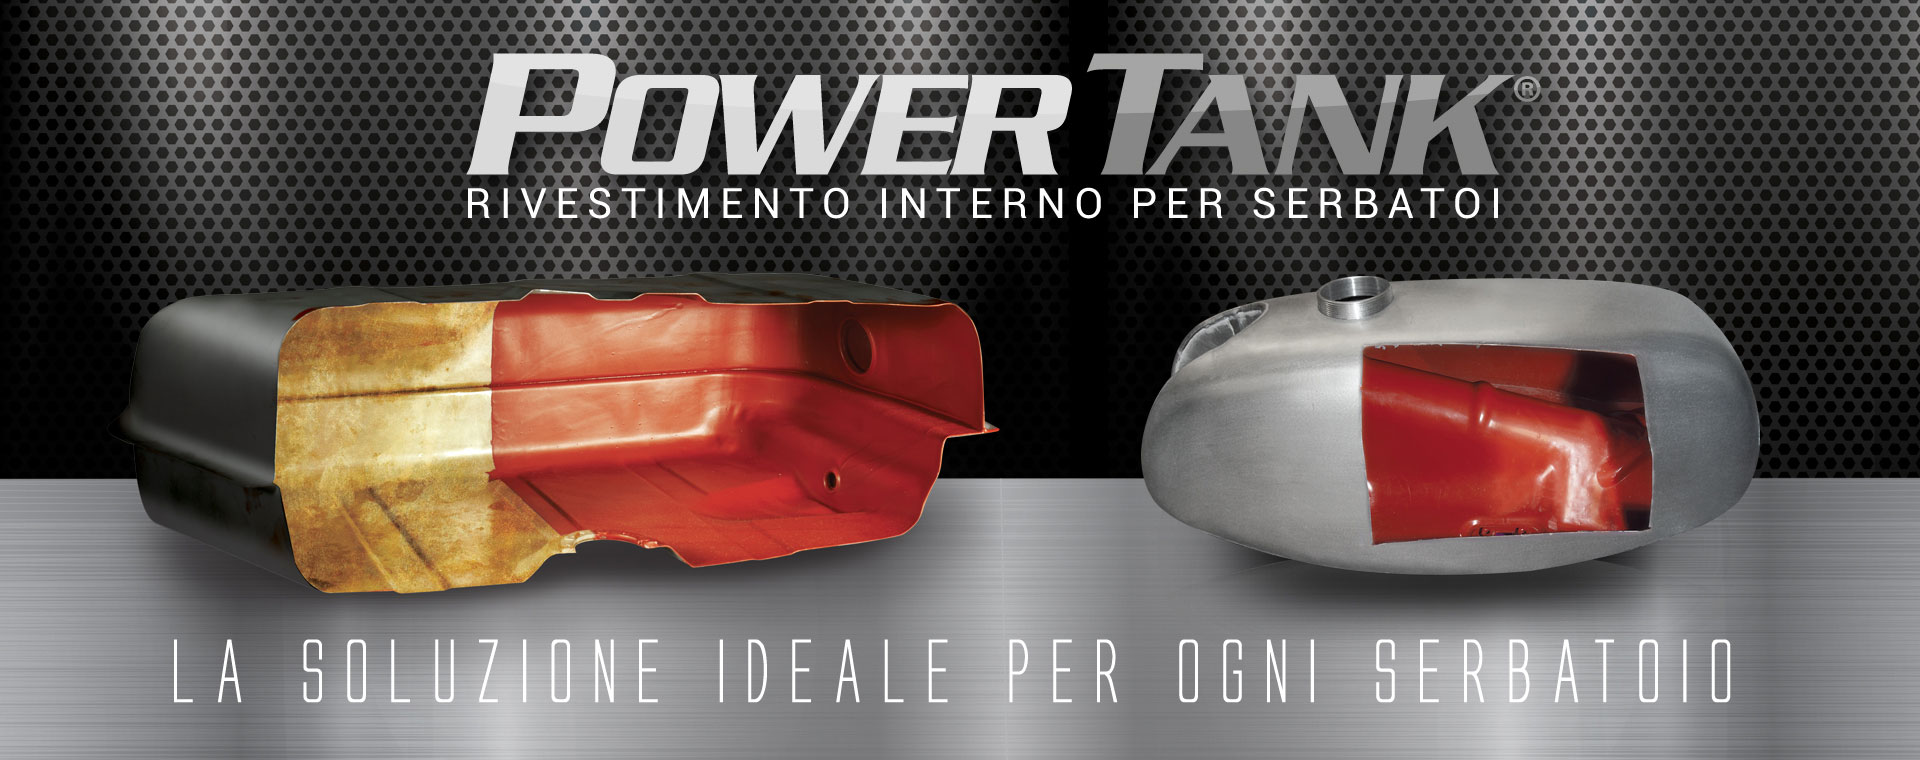 Power tank, tankerite alternativa